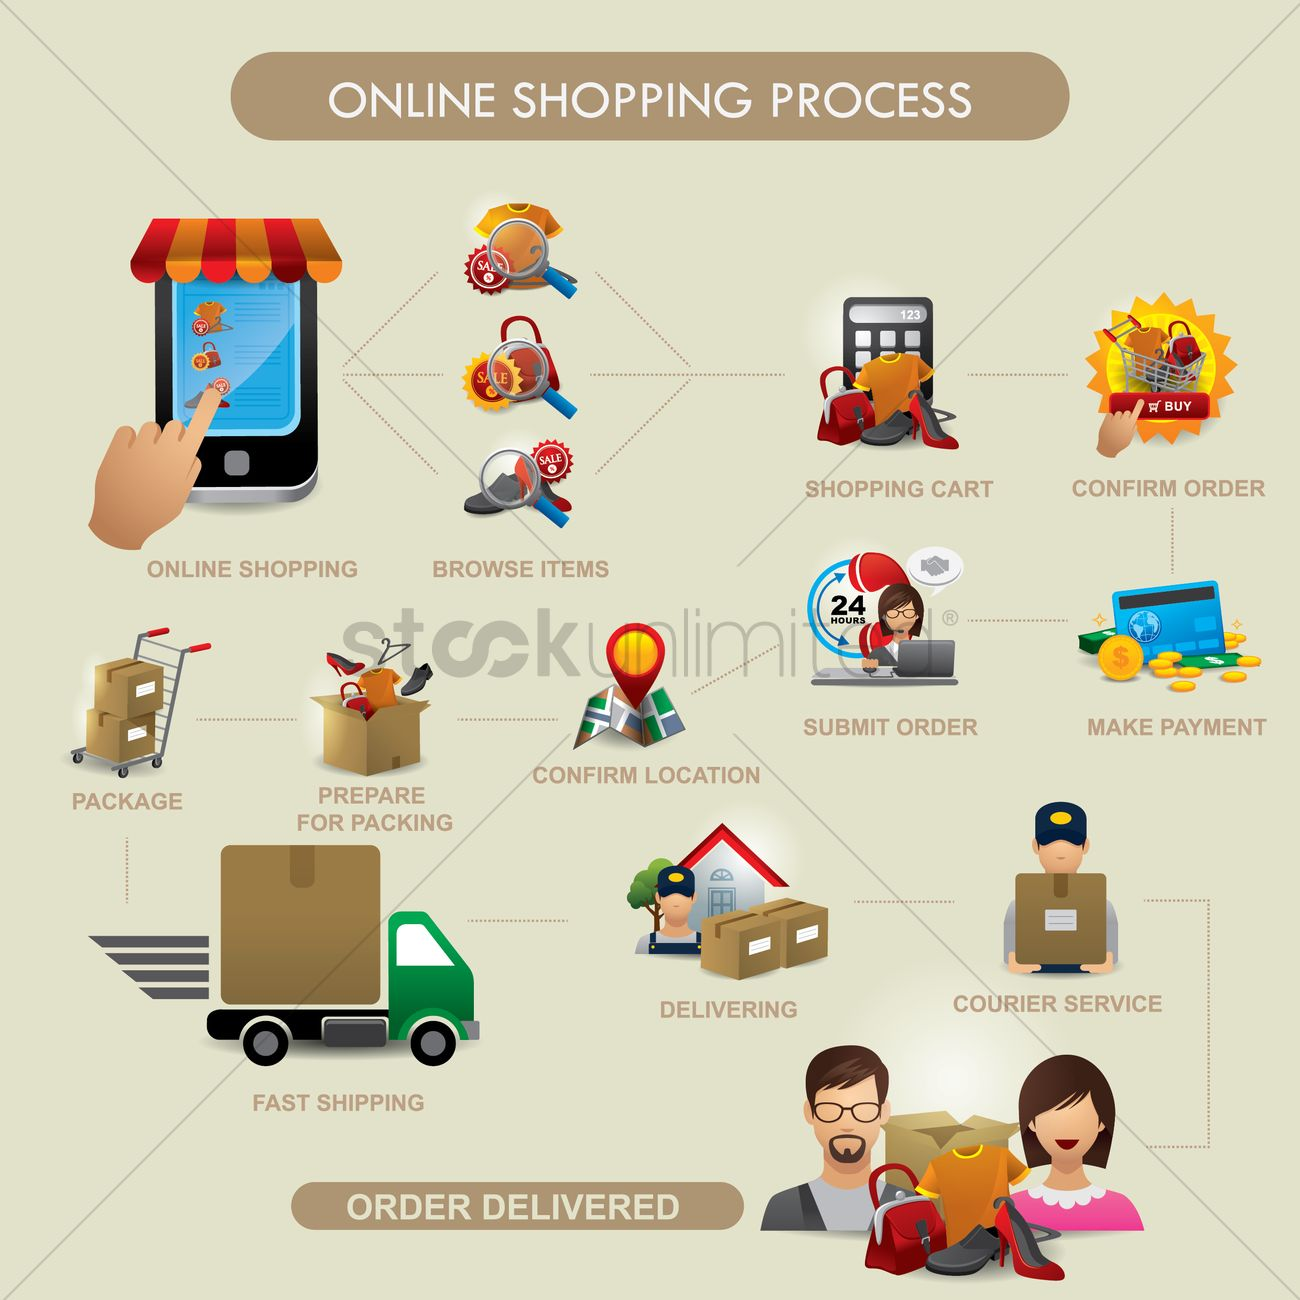 online-shopping-process_1824084.jpg